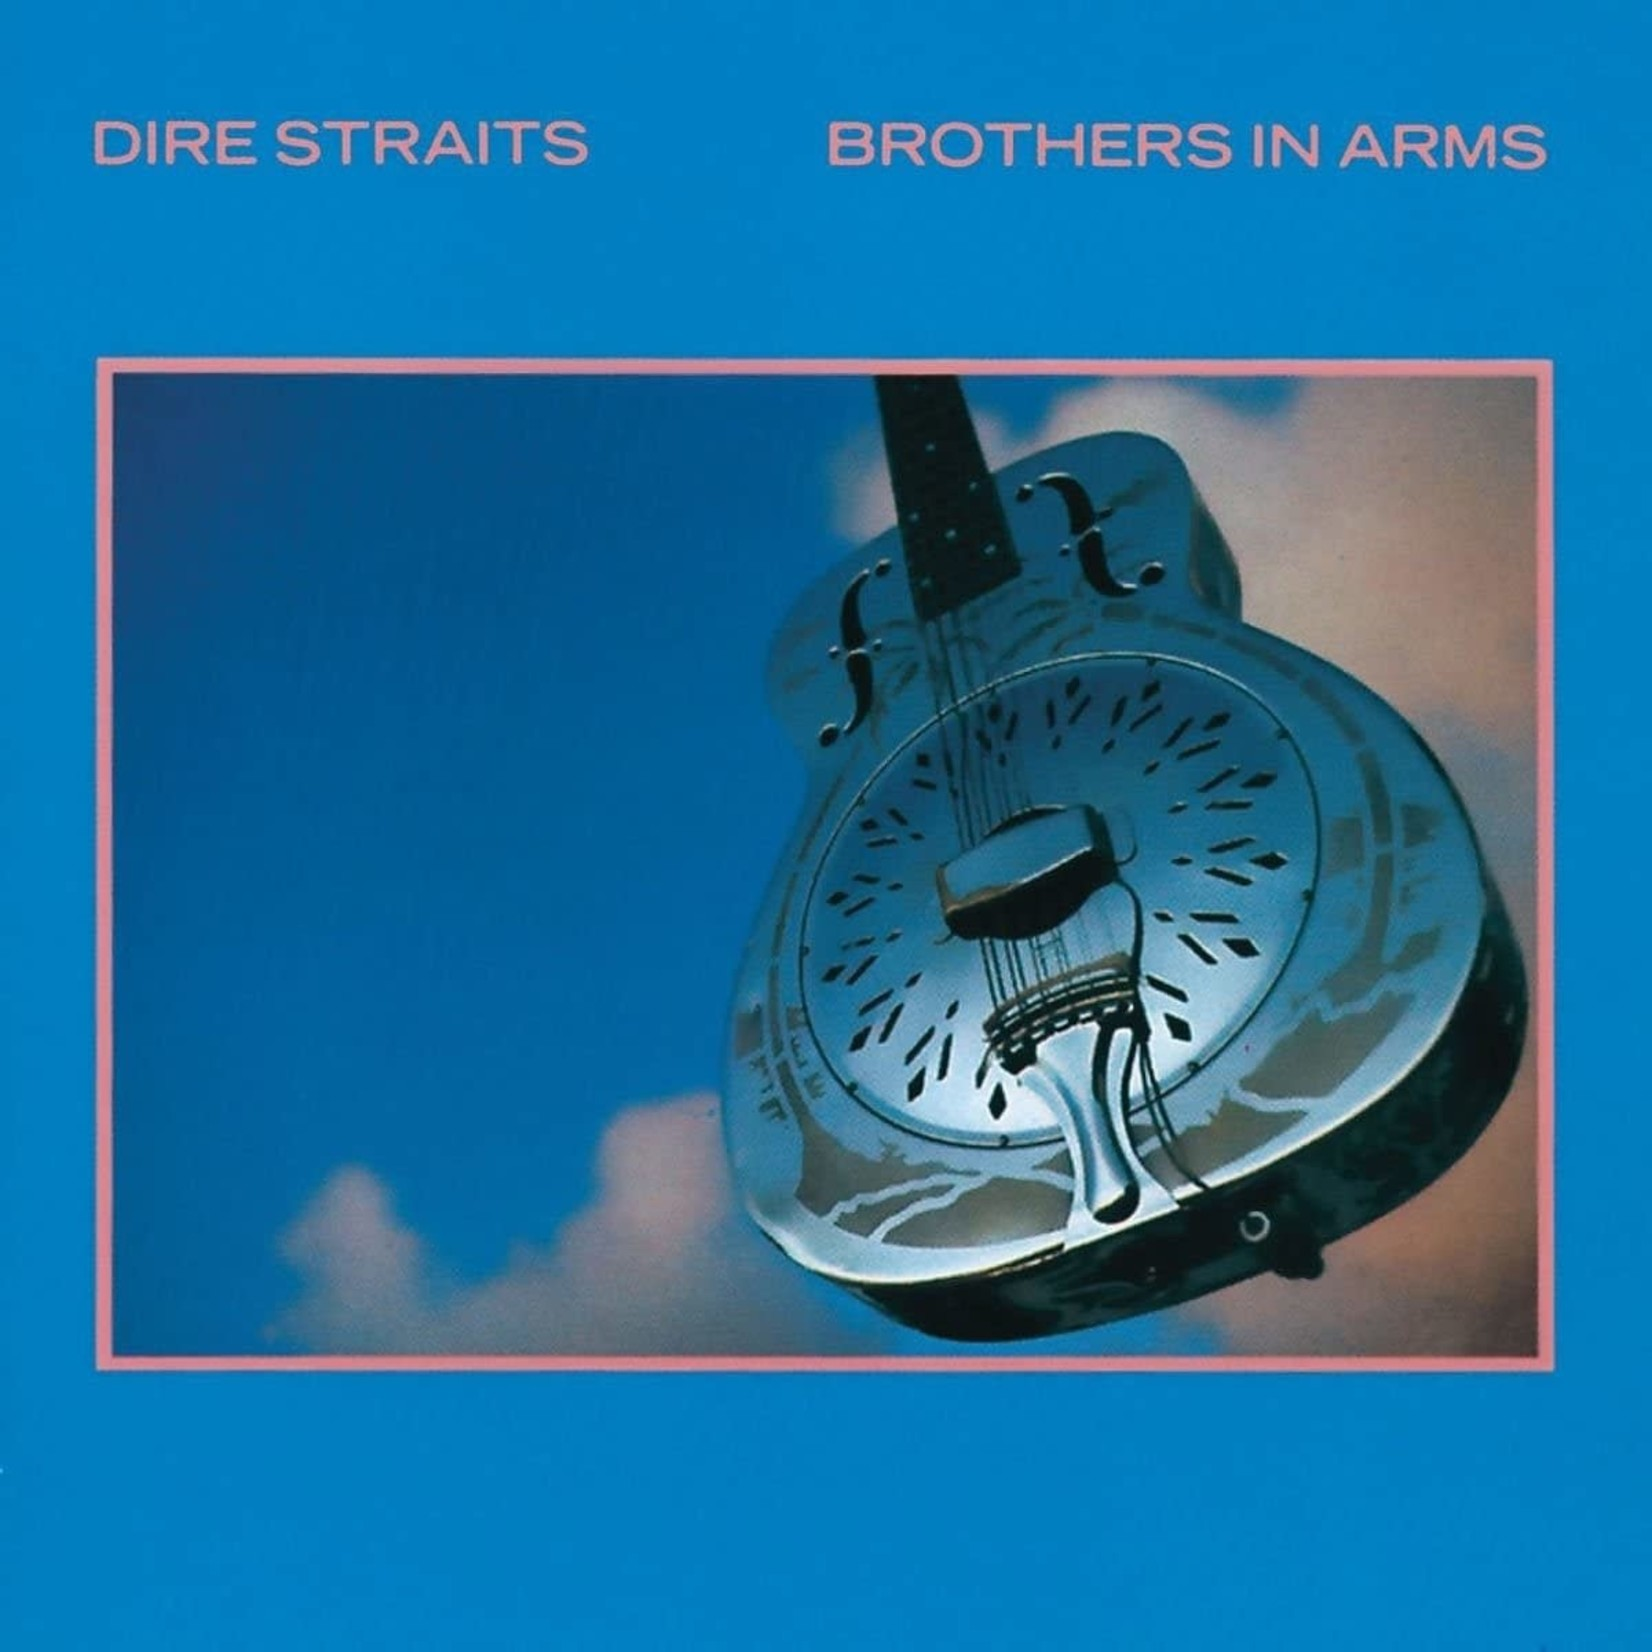 [Vintage] Dire Straits: Brothers in Arms